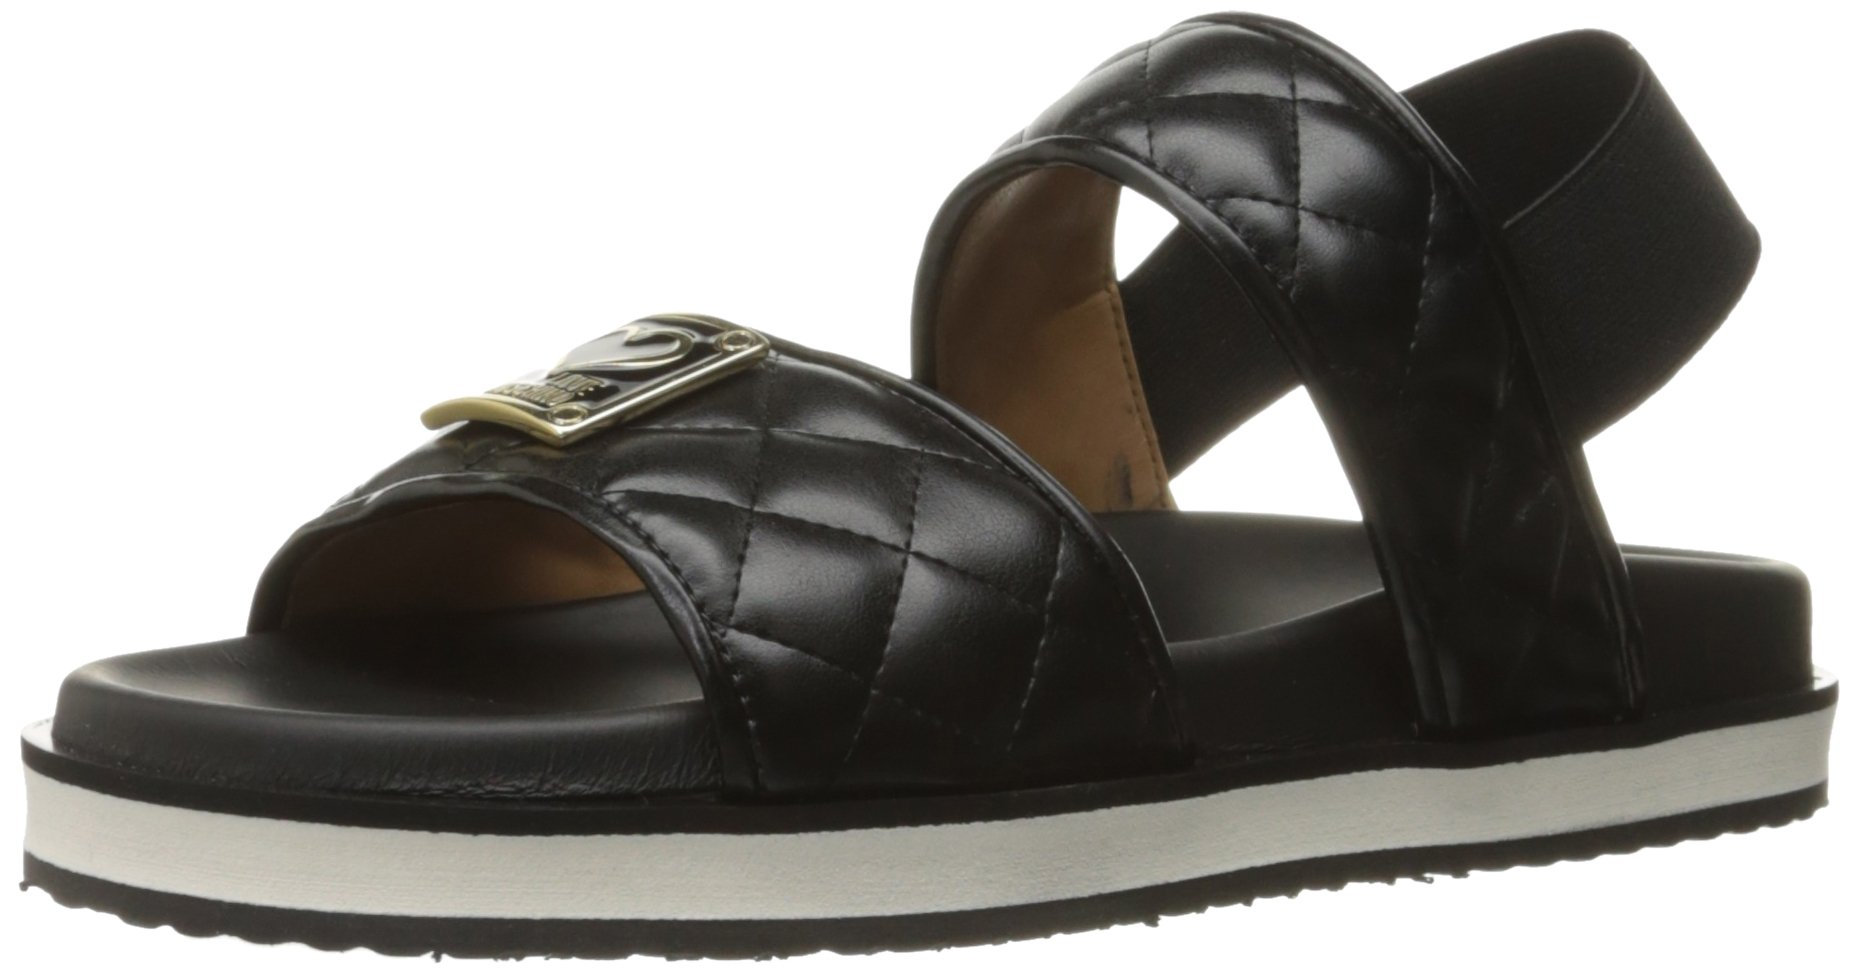 Love Moschino Women's Superquilted Flat Sandal, Black, 39 EU/9 M US